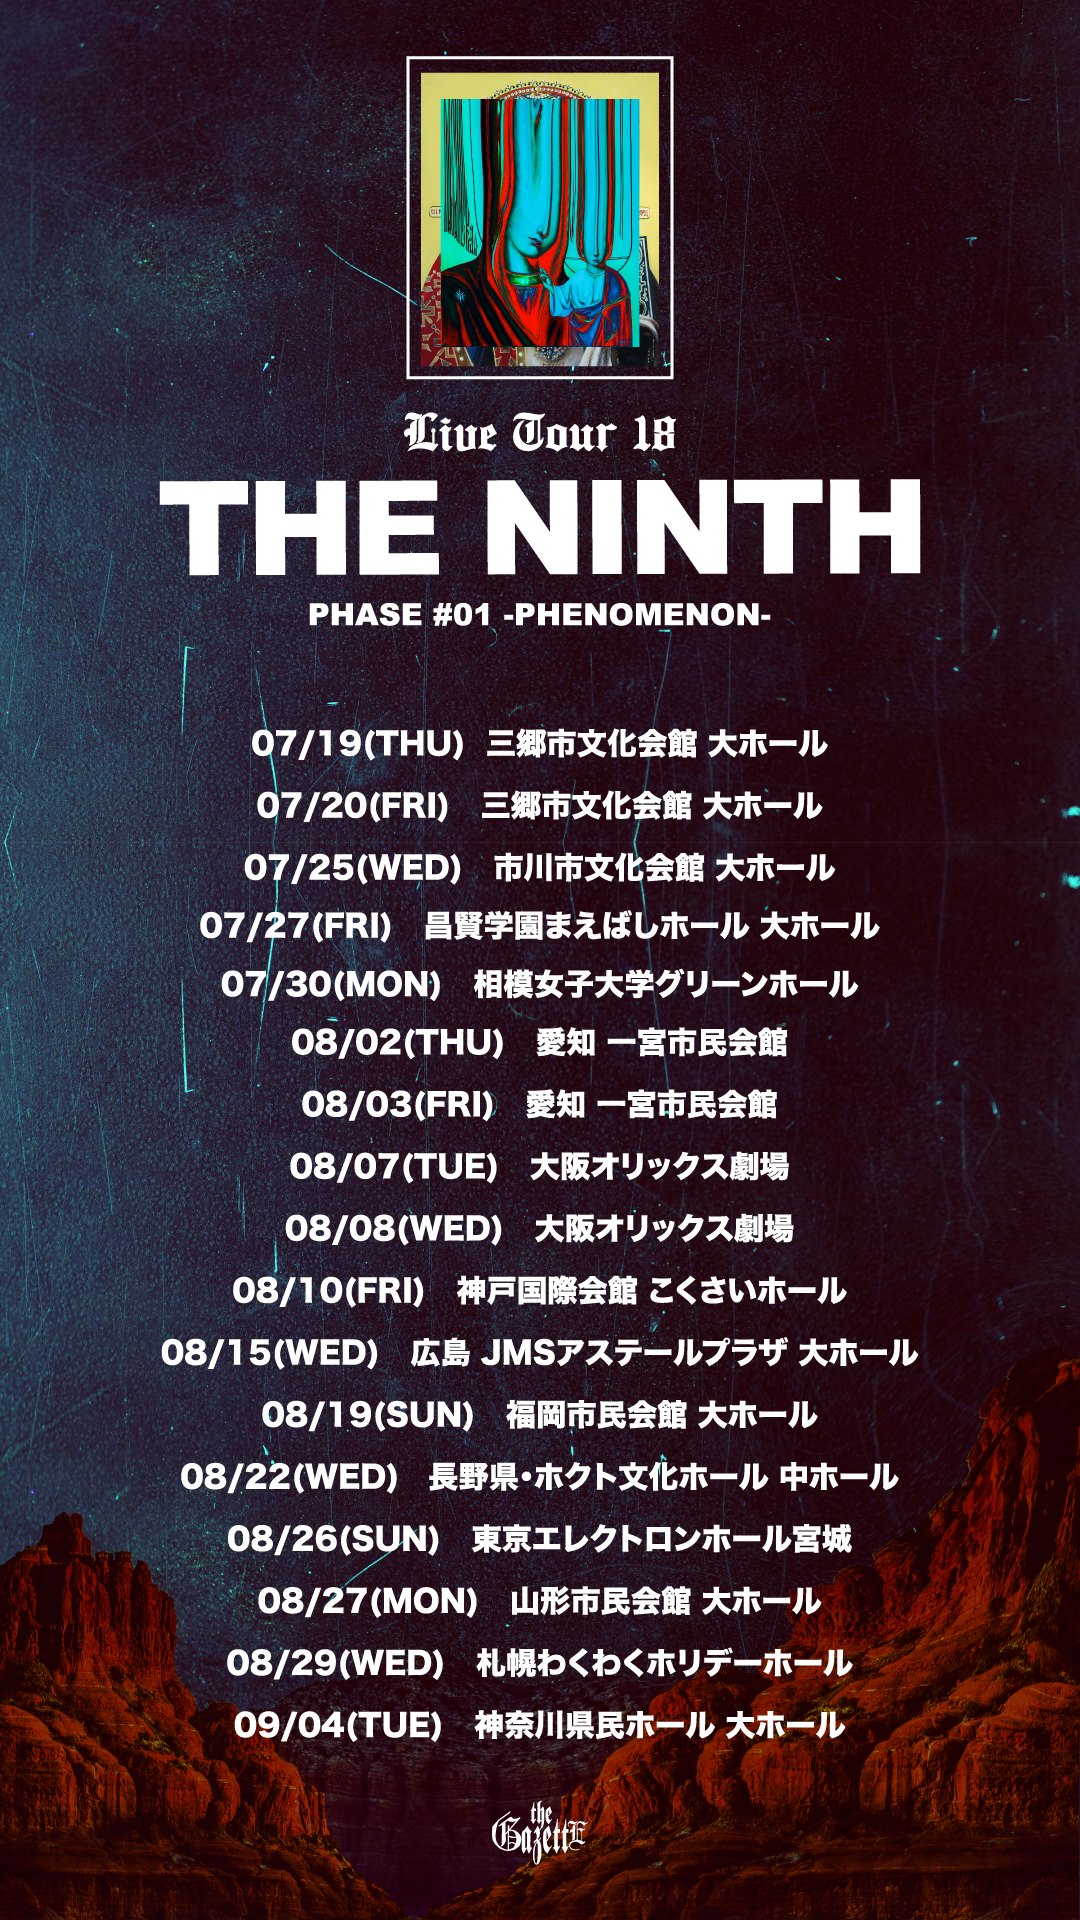 JRock247 the Gazette NINTH Phenomenon Tour